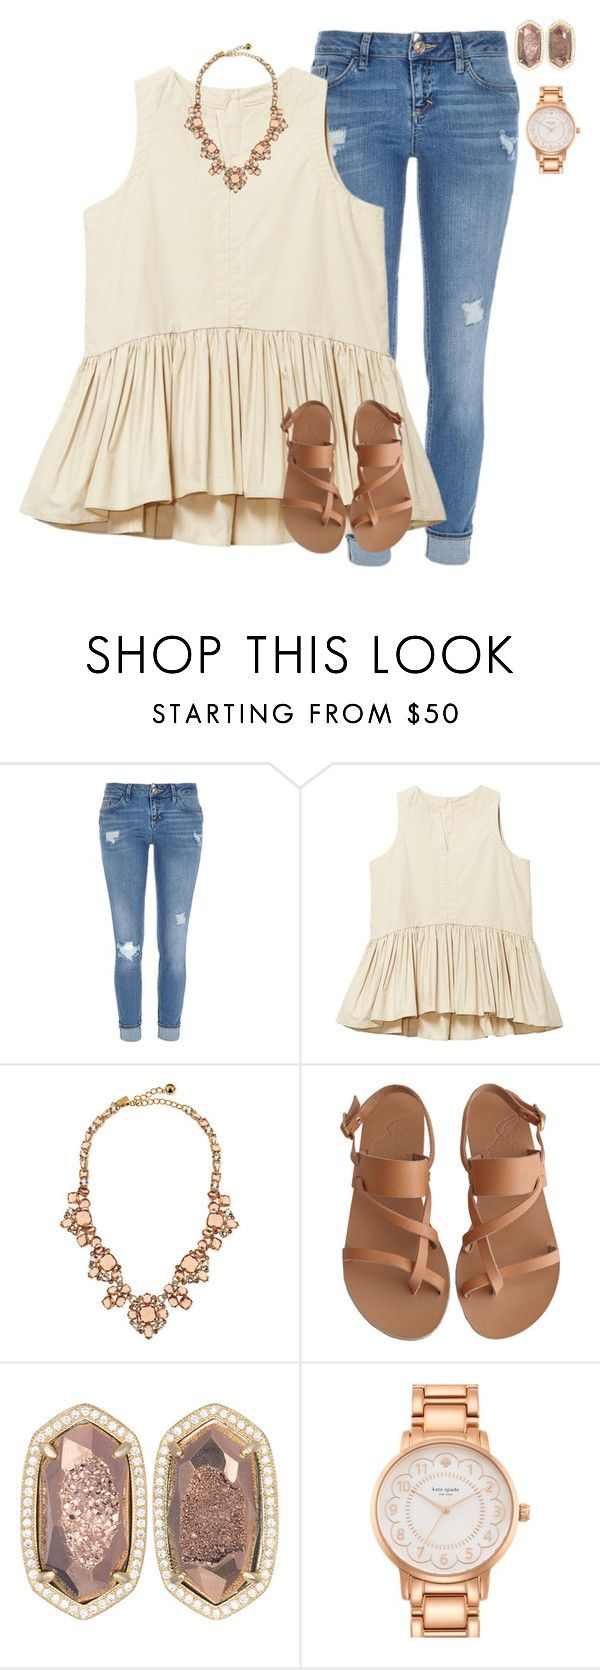 """❤️"" by mgpayne10 ❤ liked on Polyvore featuring River Island, Kate Spade, Ancient Greek Sandals and Kendra Scott"